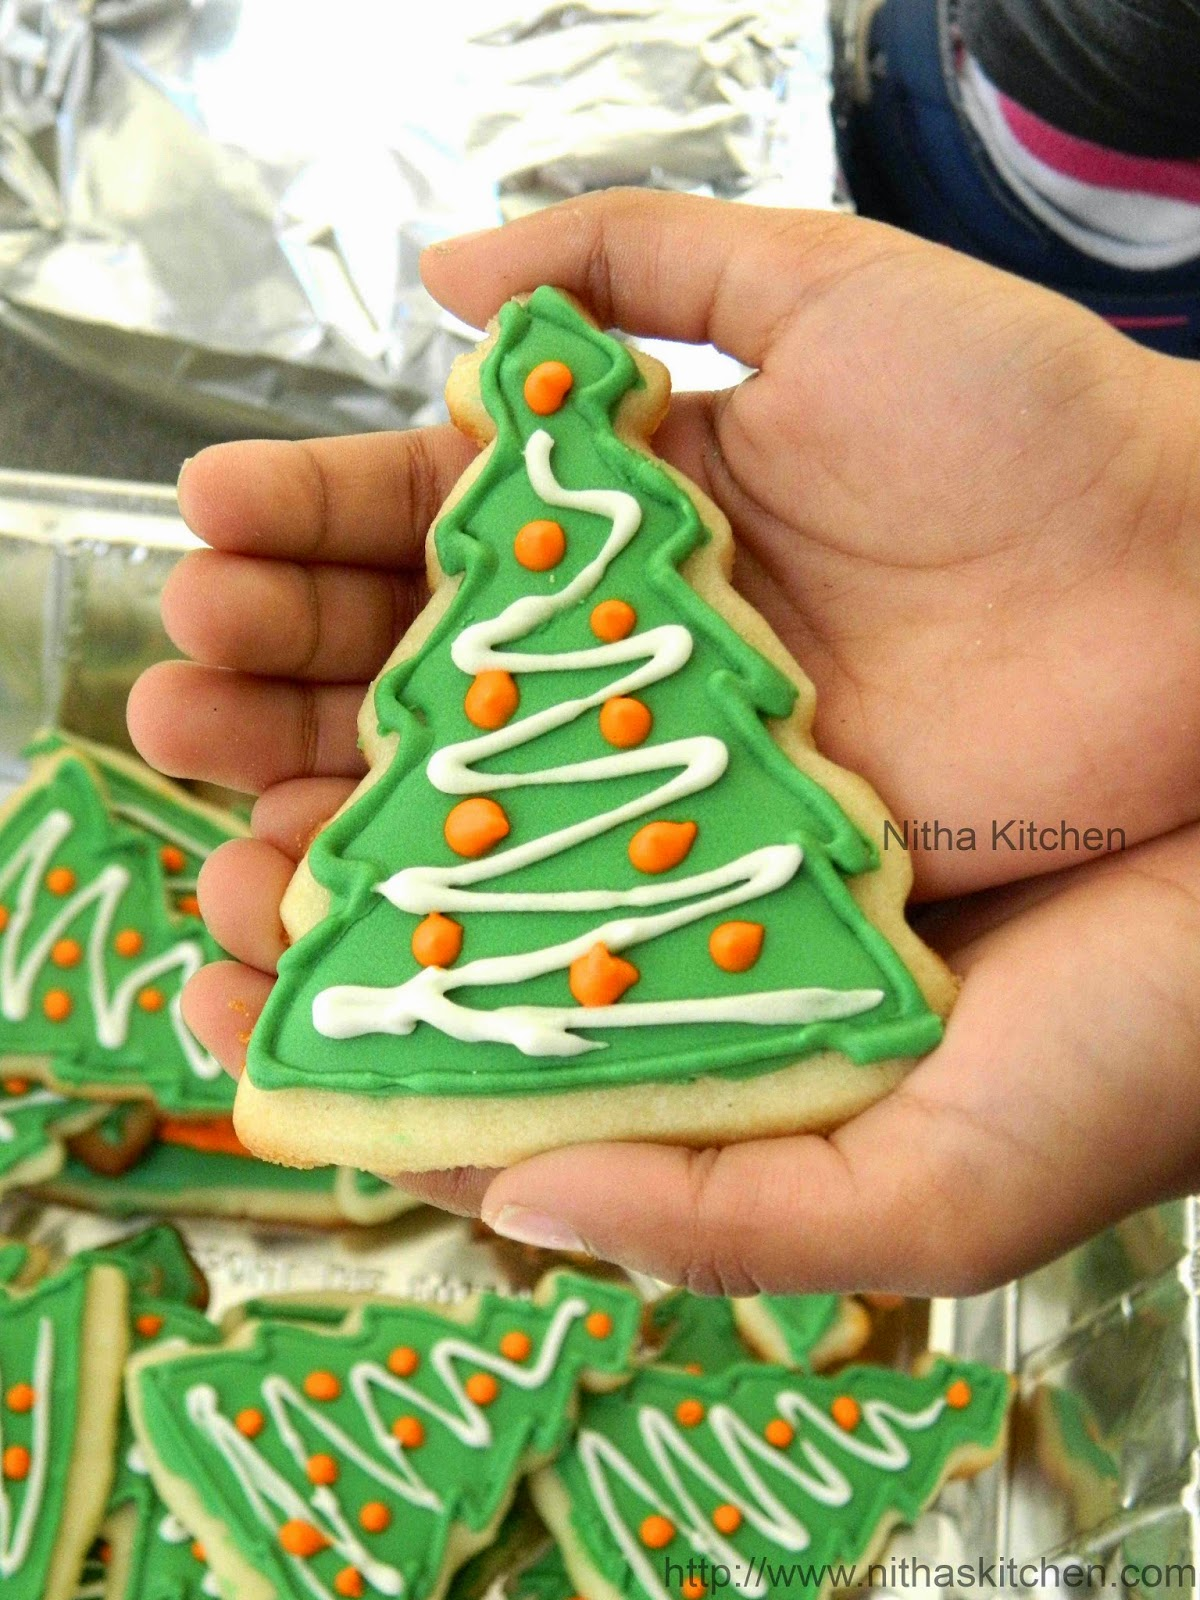 Nitha Kitchen: Christmas Sugar Cookies with Royal Icing Recipe